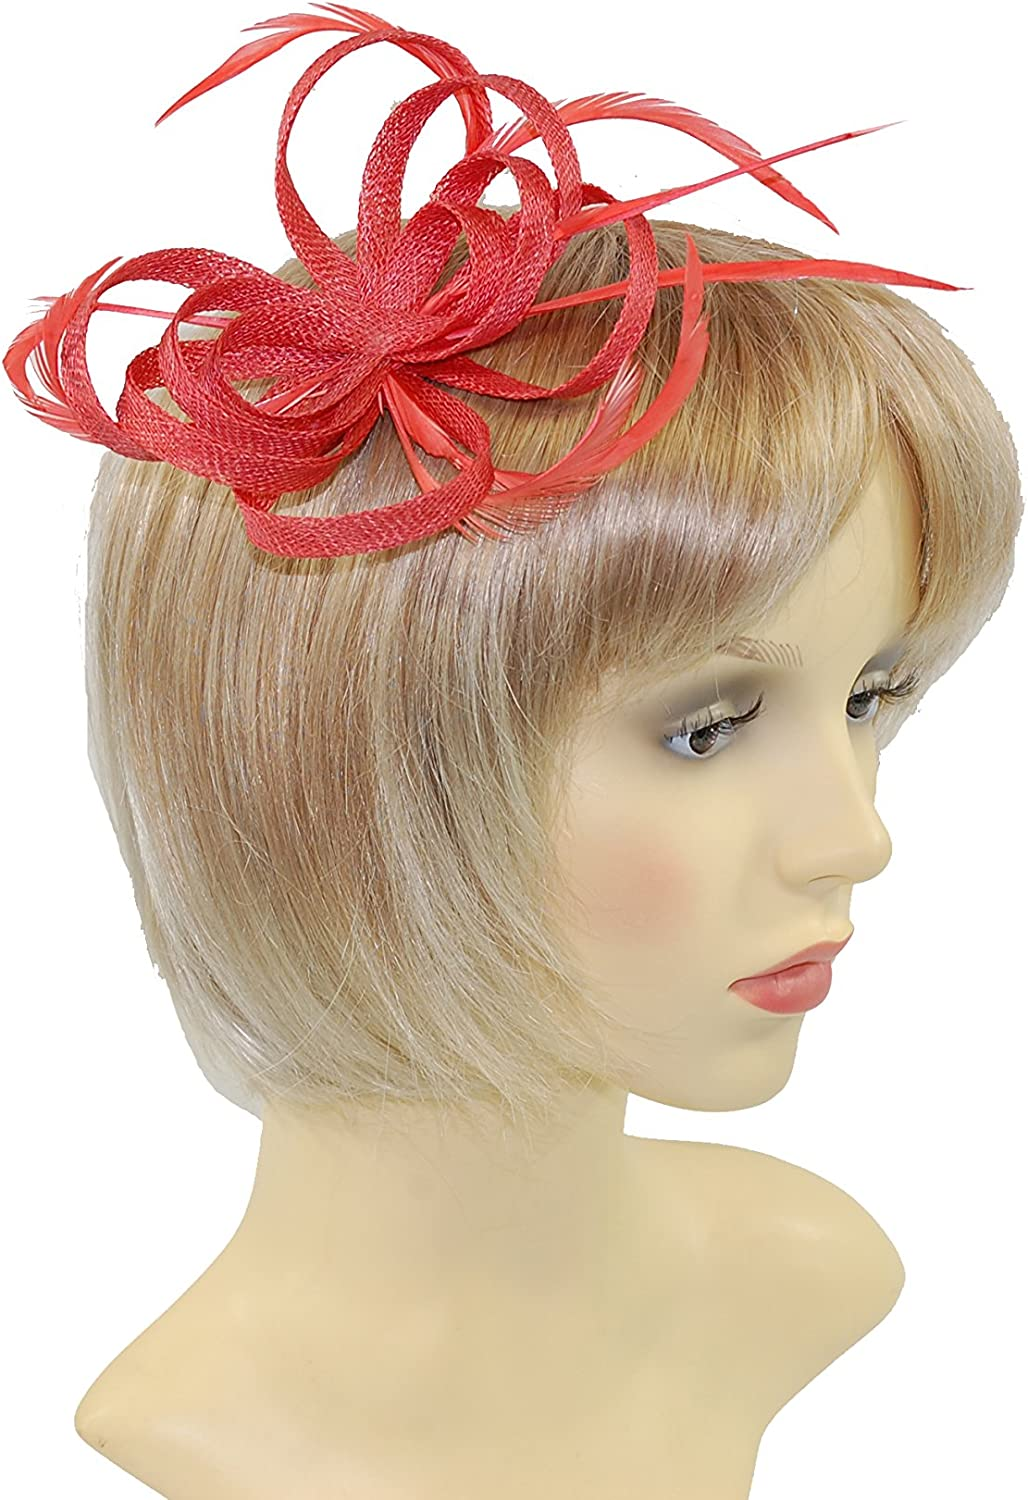 GIZZY/® Sinamay Loops Fascinator with Feather Tendrils on Hair Clip /& Brooch Pin.